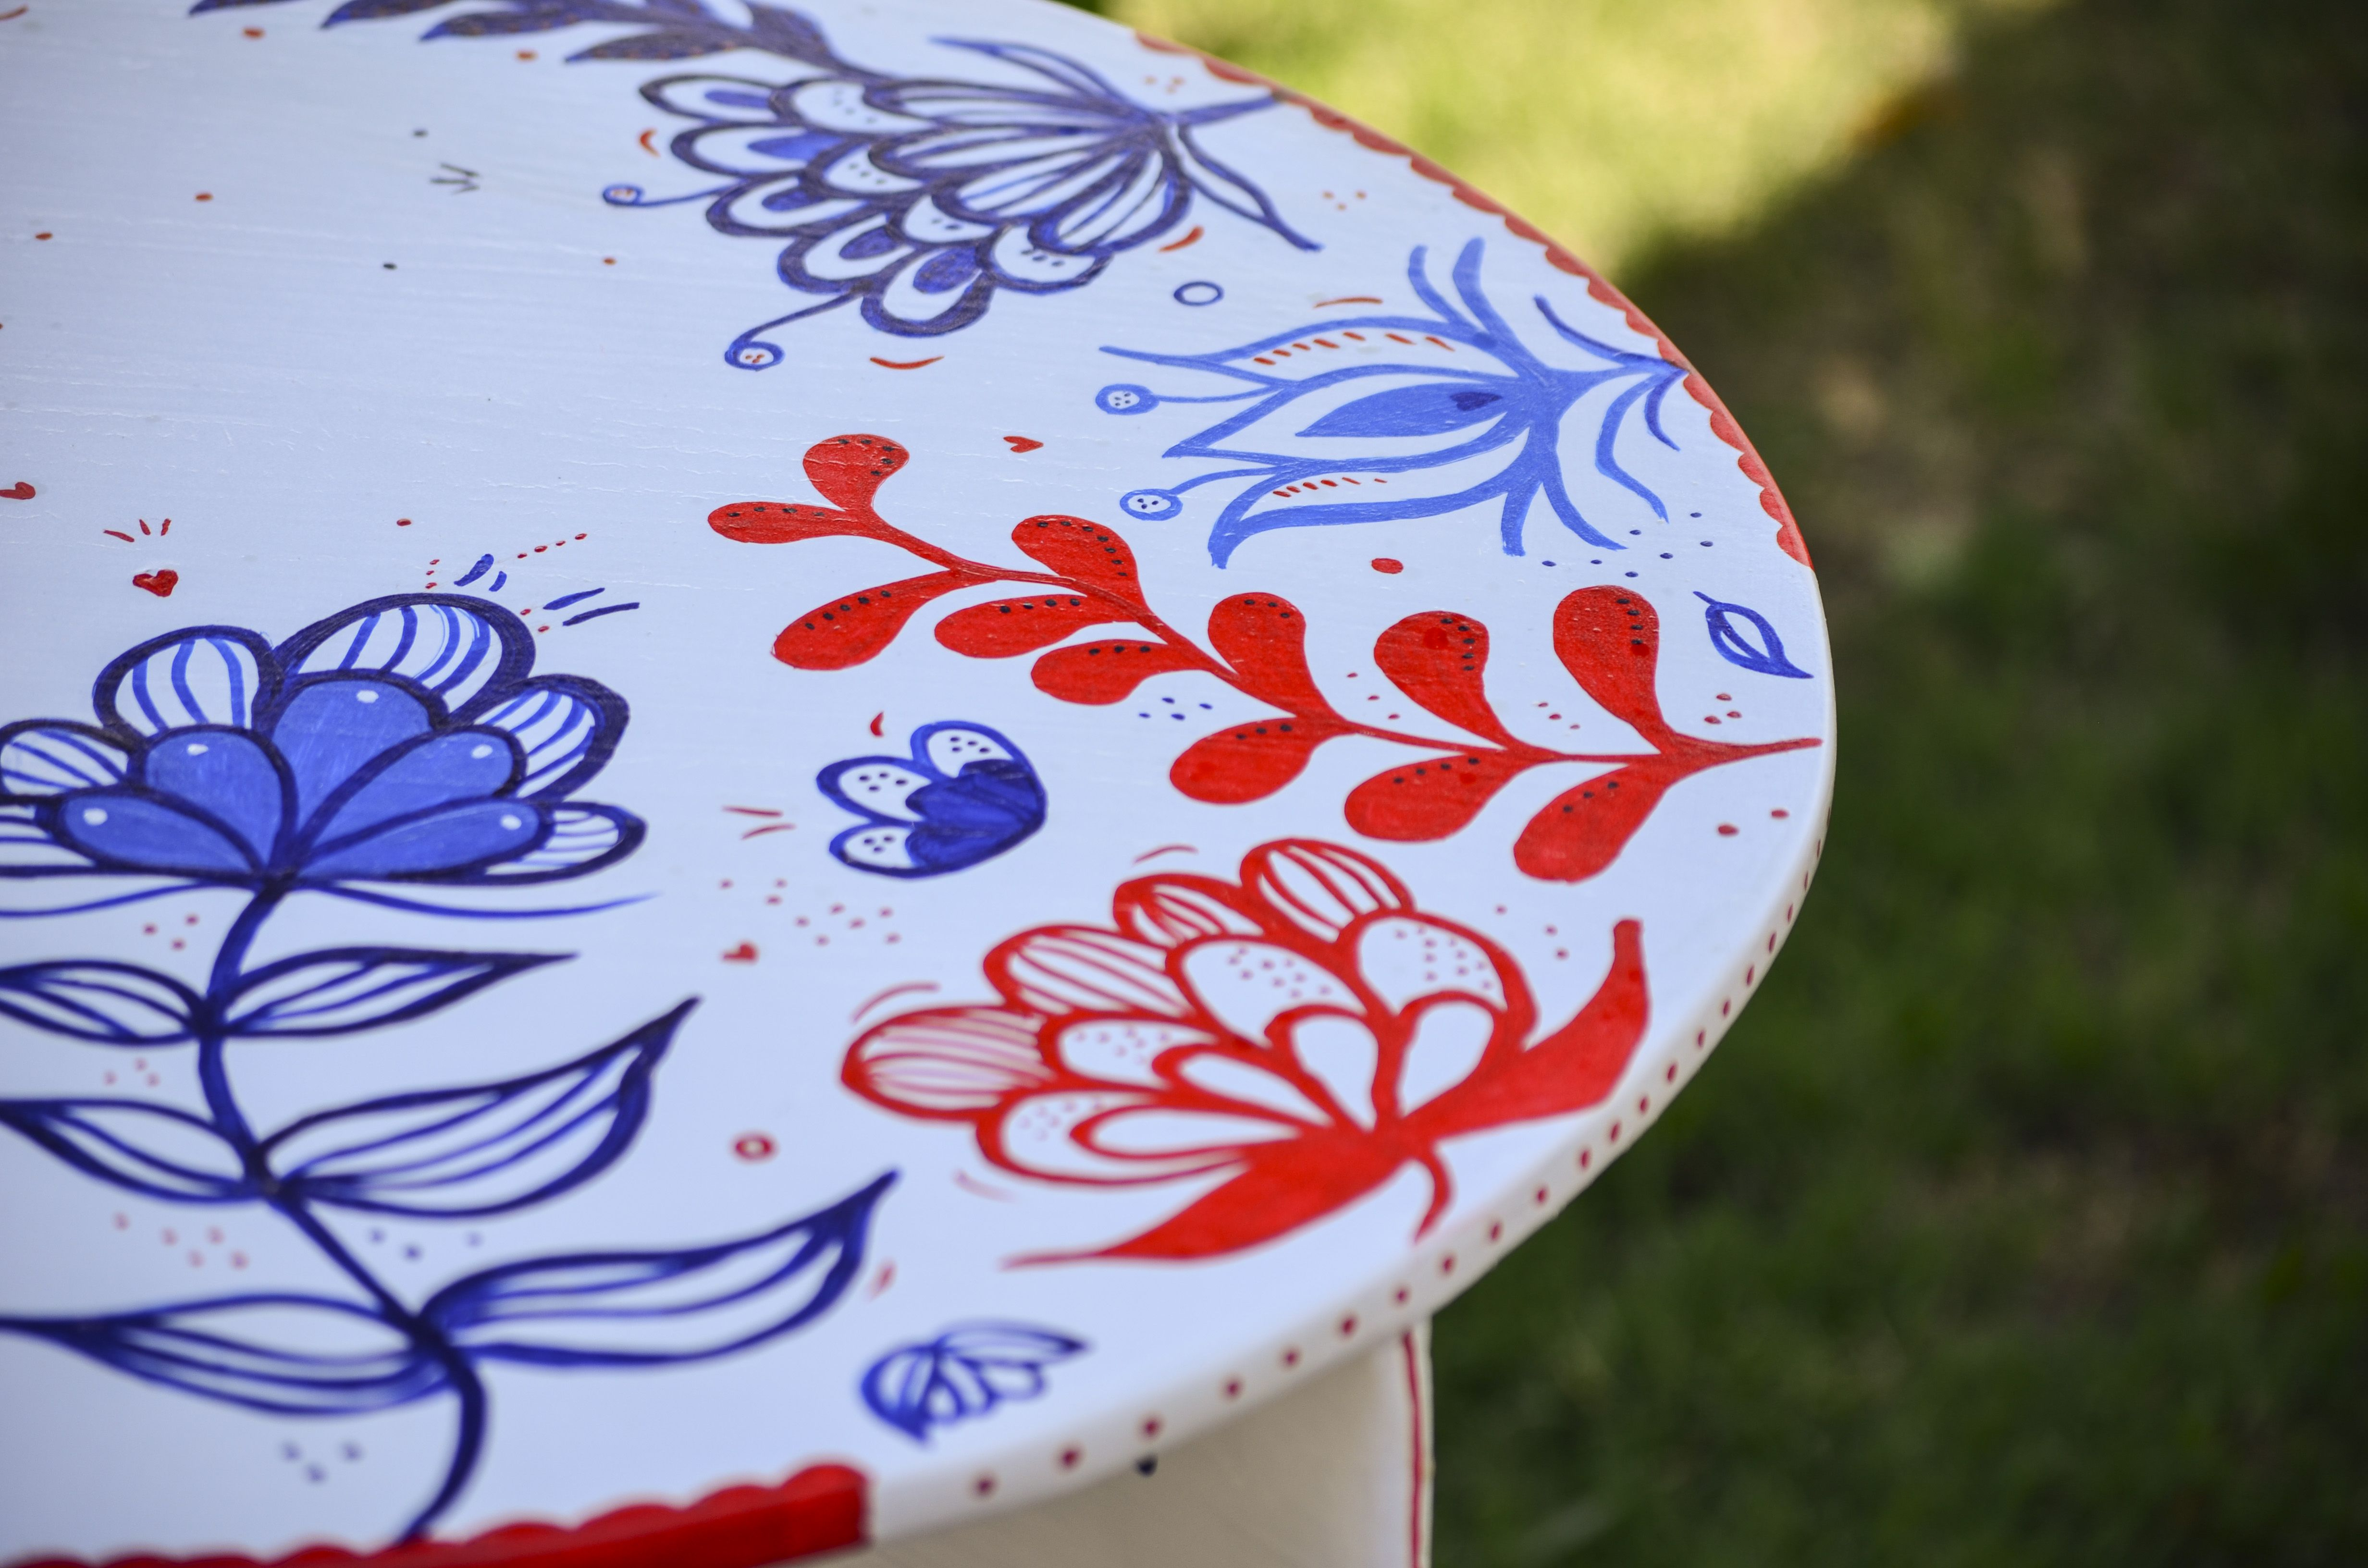 Handmade painting on a table.  Mesa pintada a mano. #pauminottoilustración